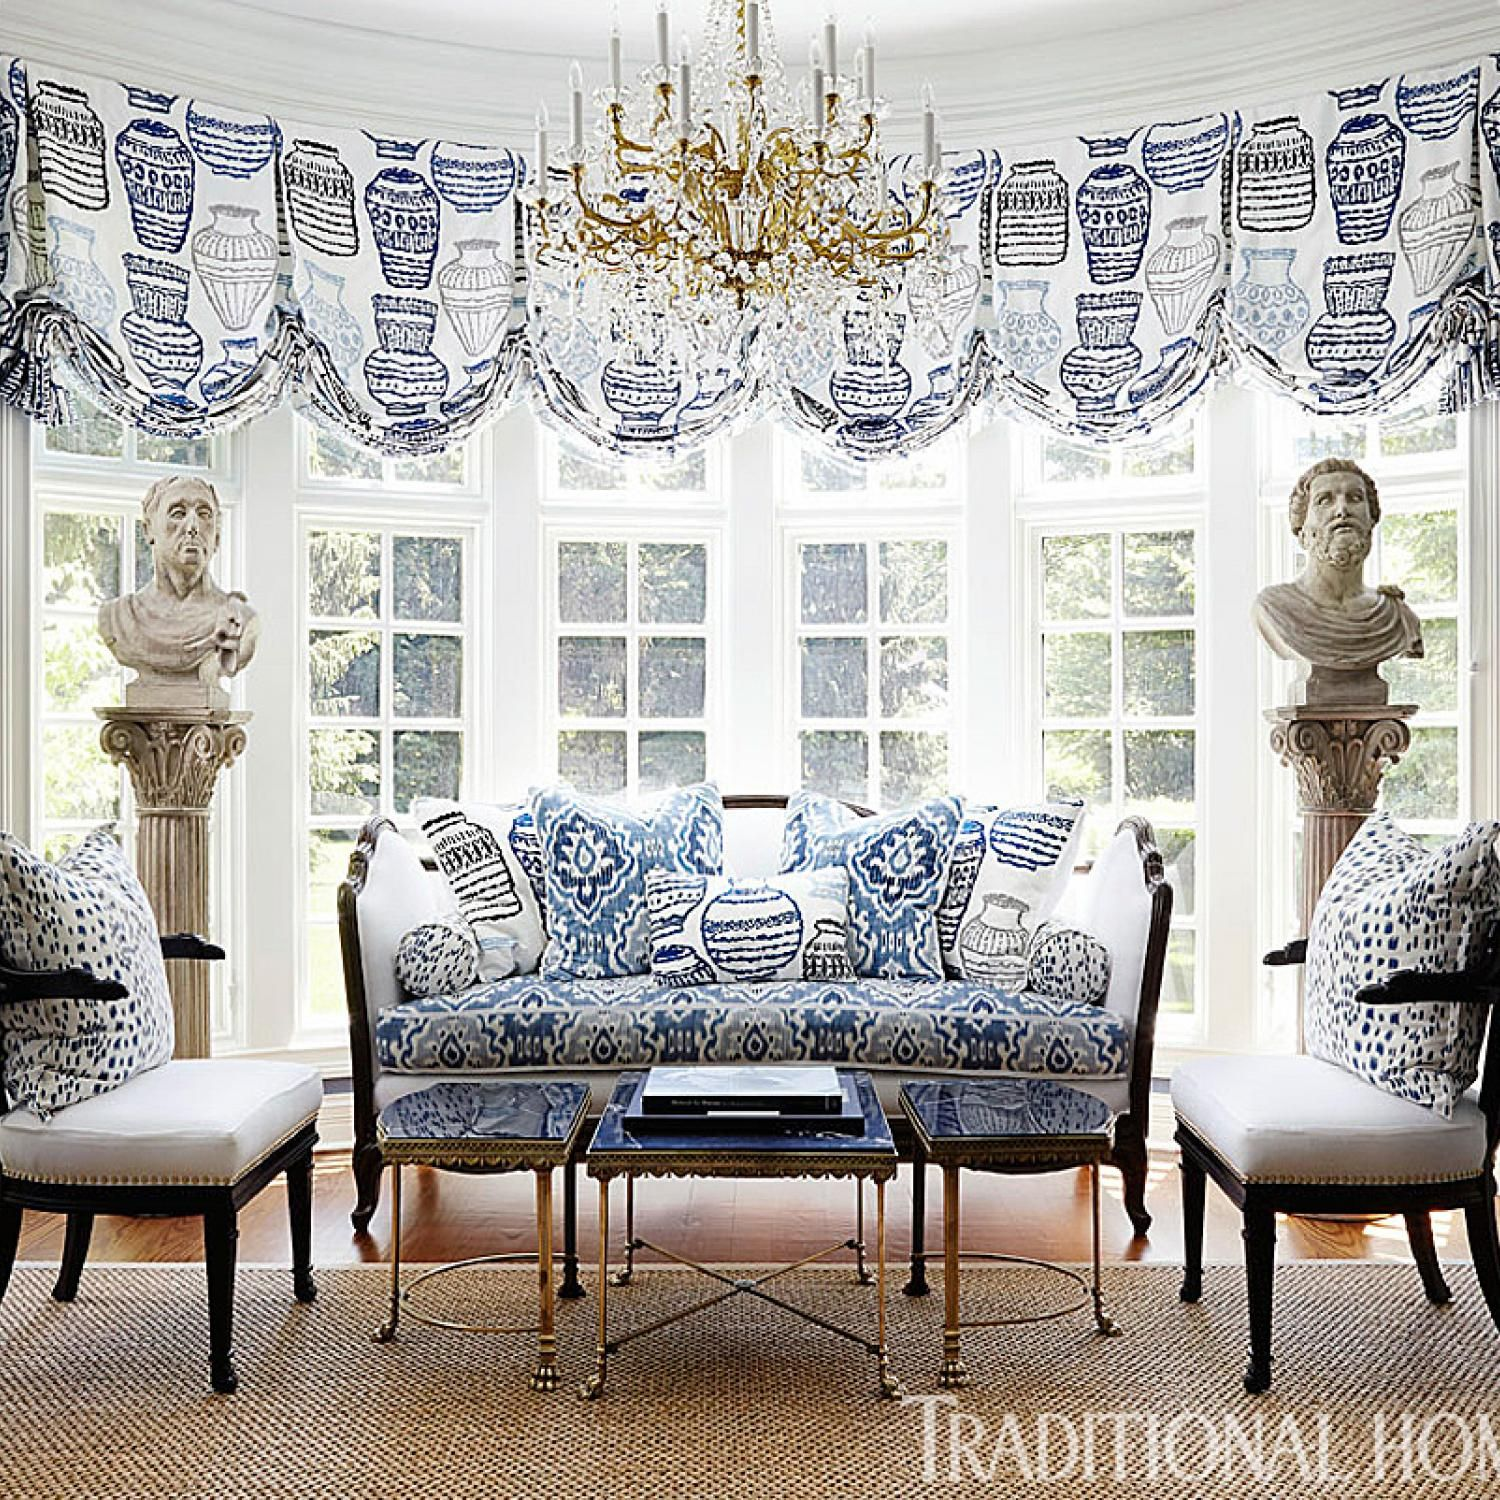 New Home in Navy and Indigo | Pinterest | Navy, French blue and ...